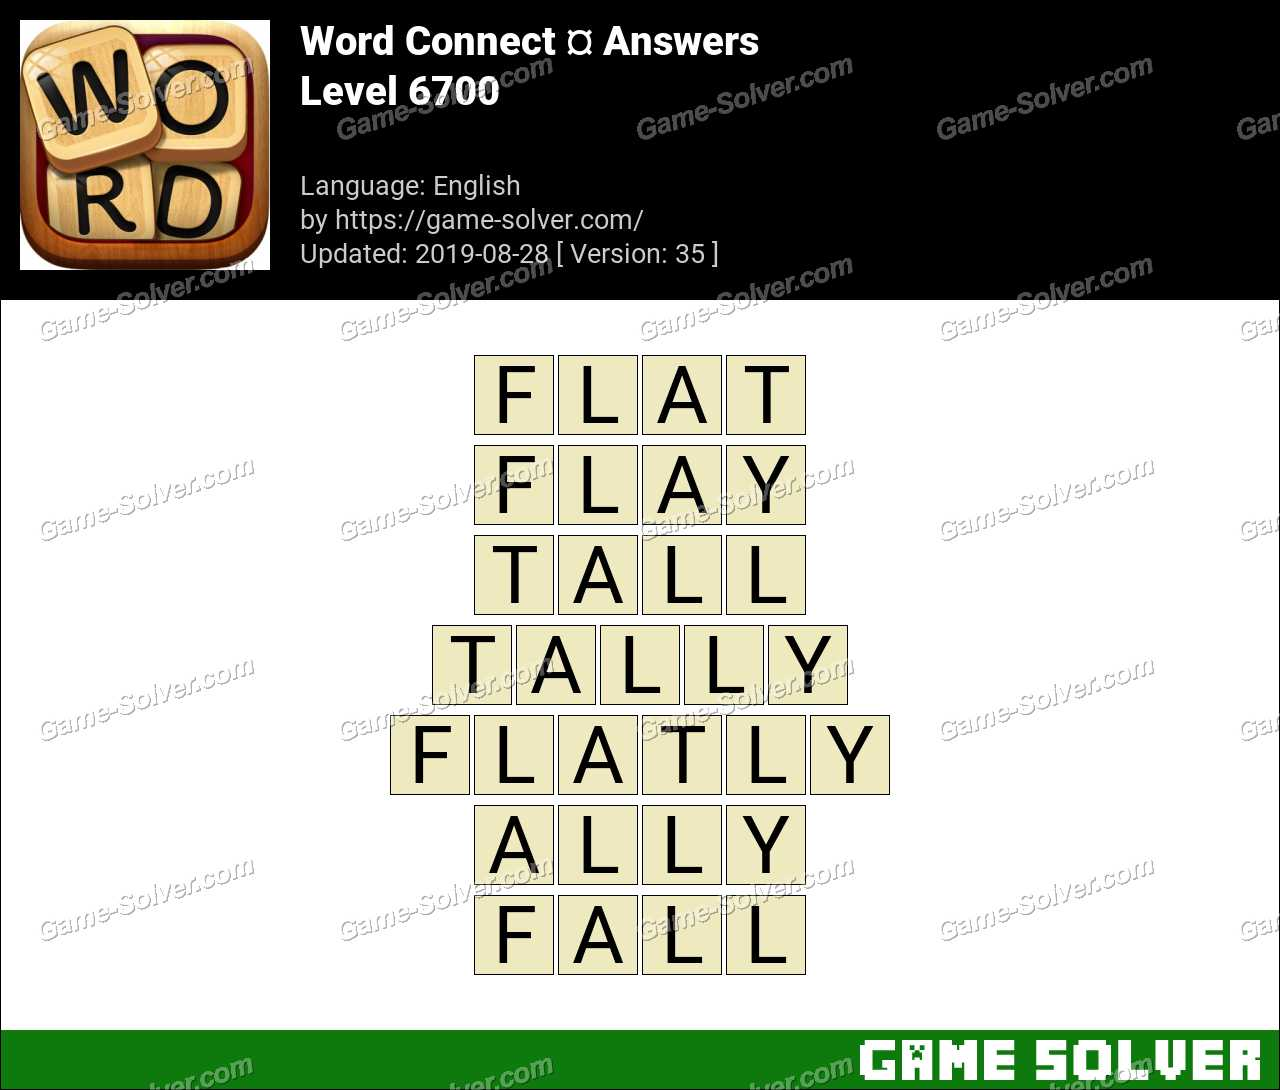 Word Connect Level 6700 Answers